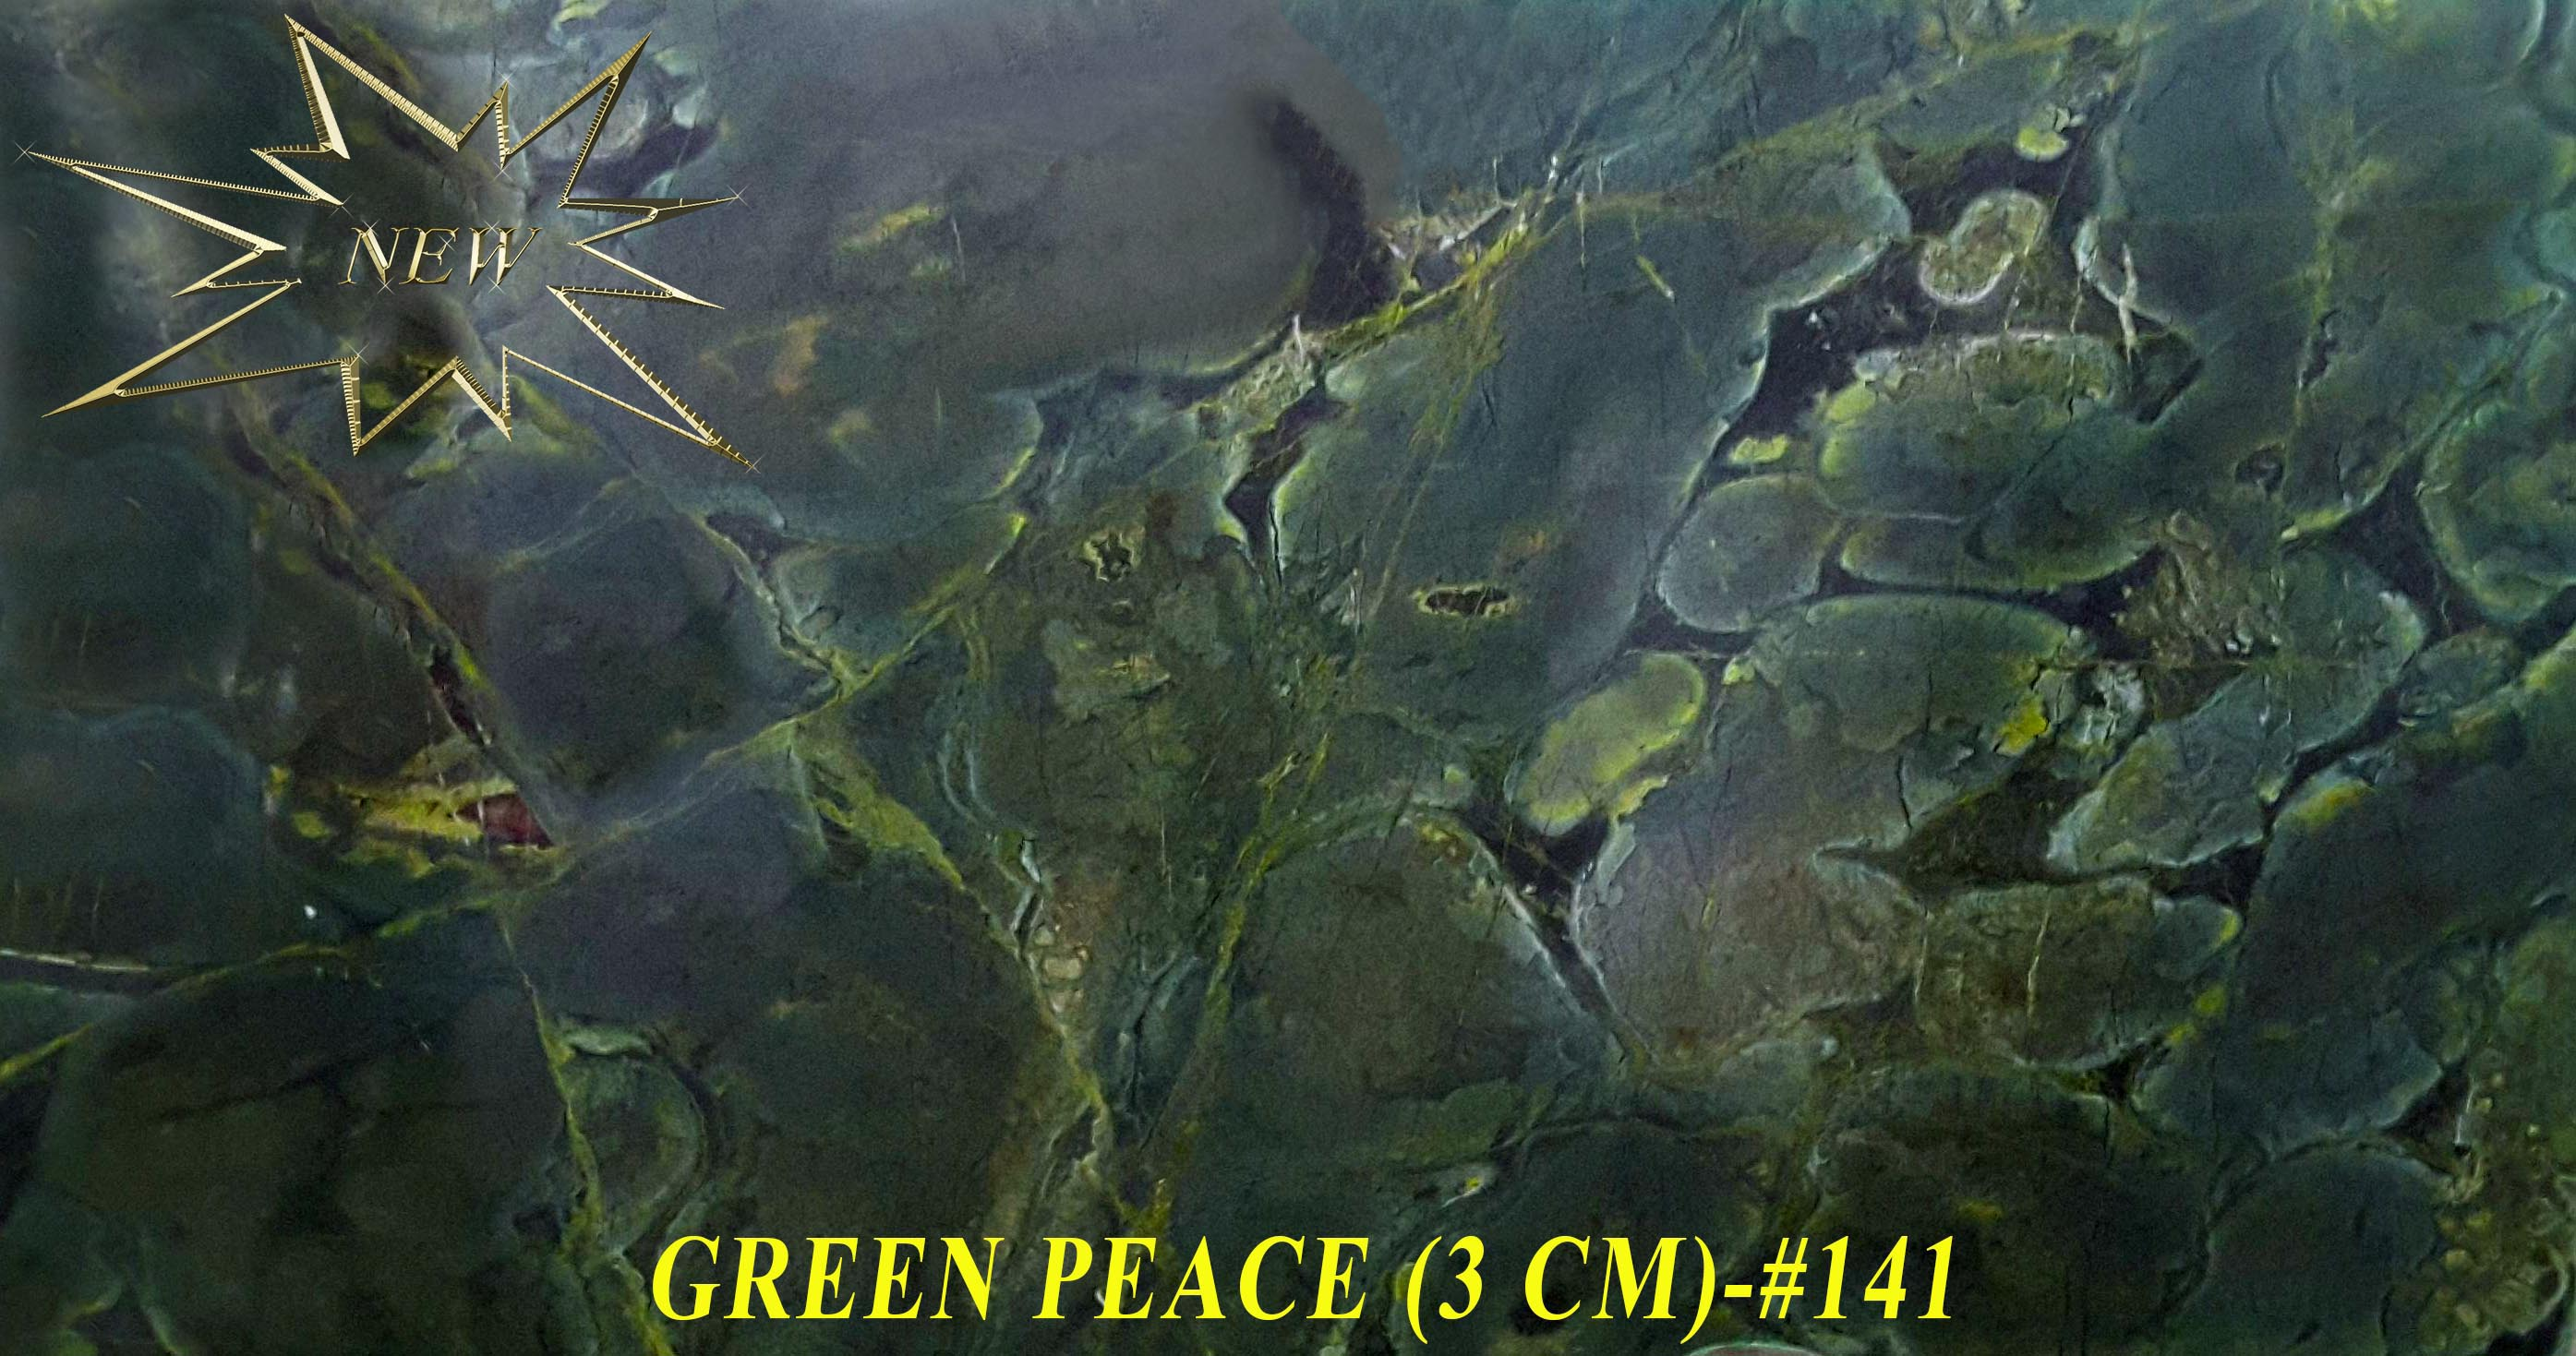 GREEN PEACE (NEW)(3 CM)-#141